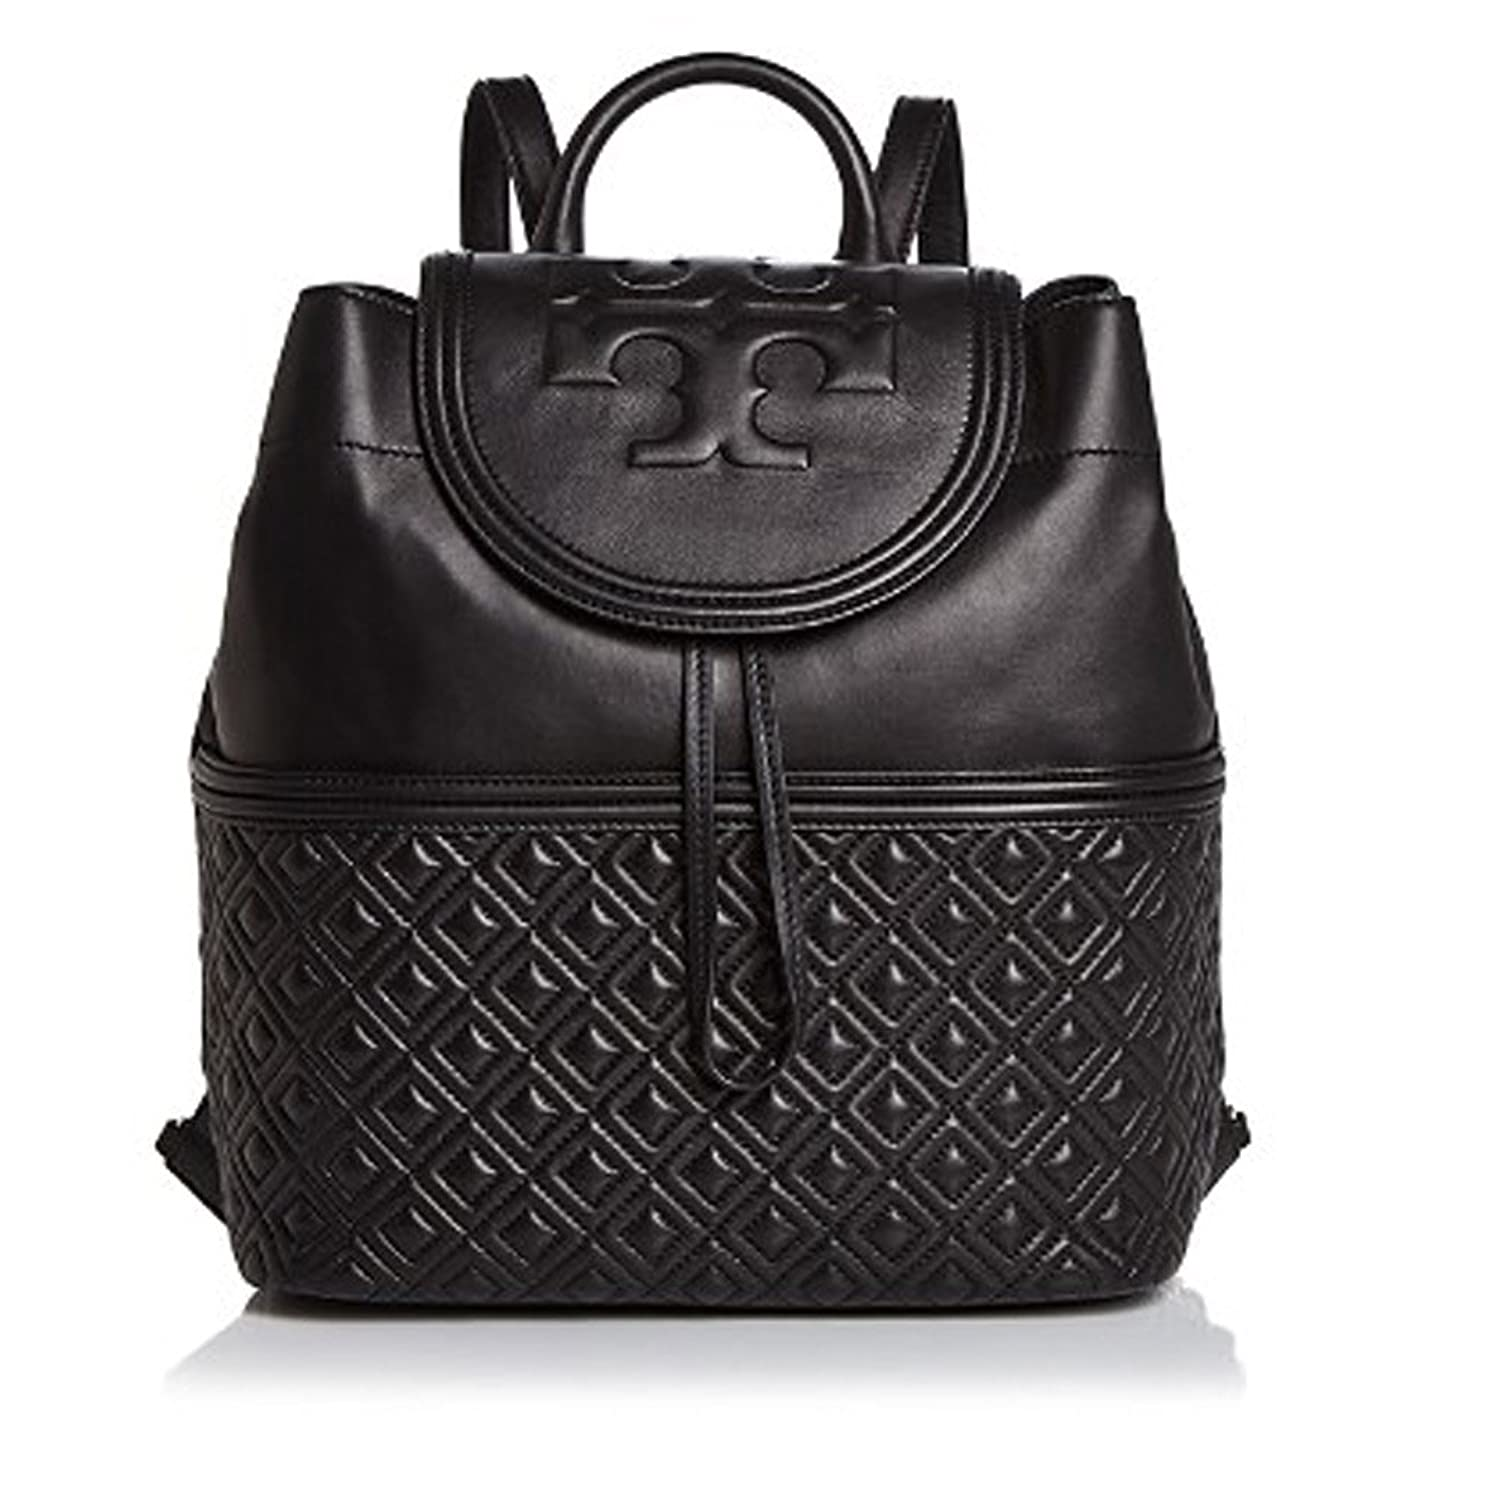 TORY BURCH FLEMING BACKPACK BLACK B01MDQ3J7N